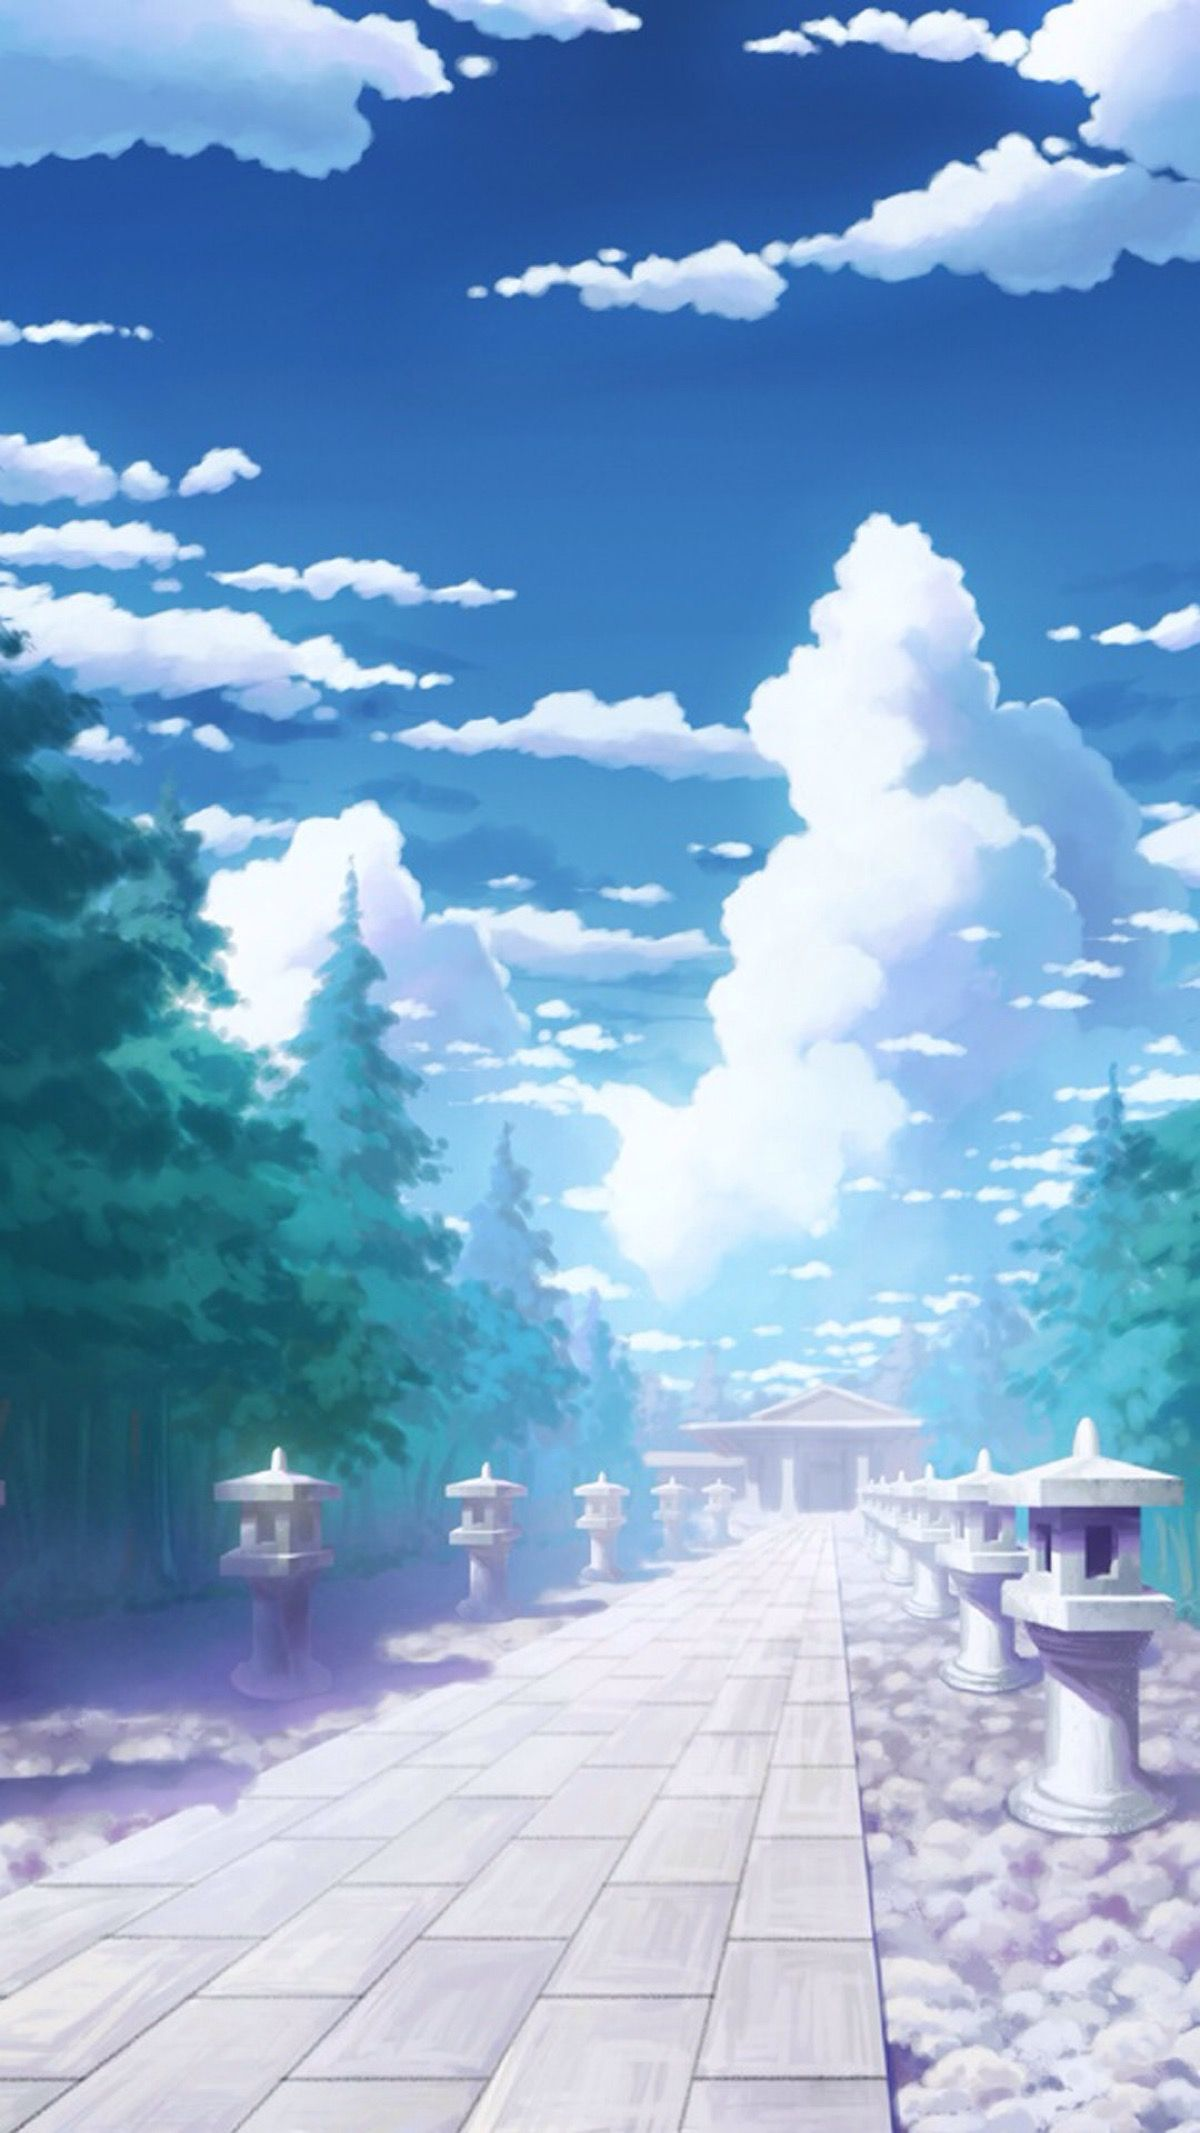 Master Anime Ecchi Picture Wallpapers City Anime